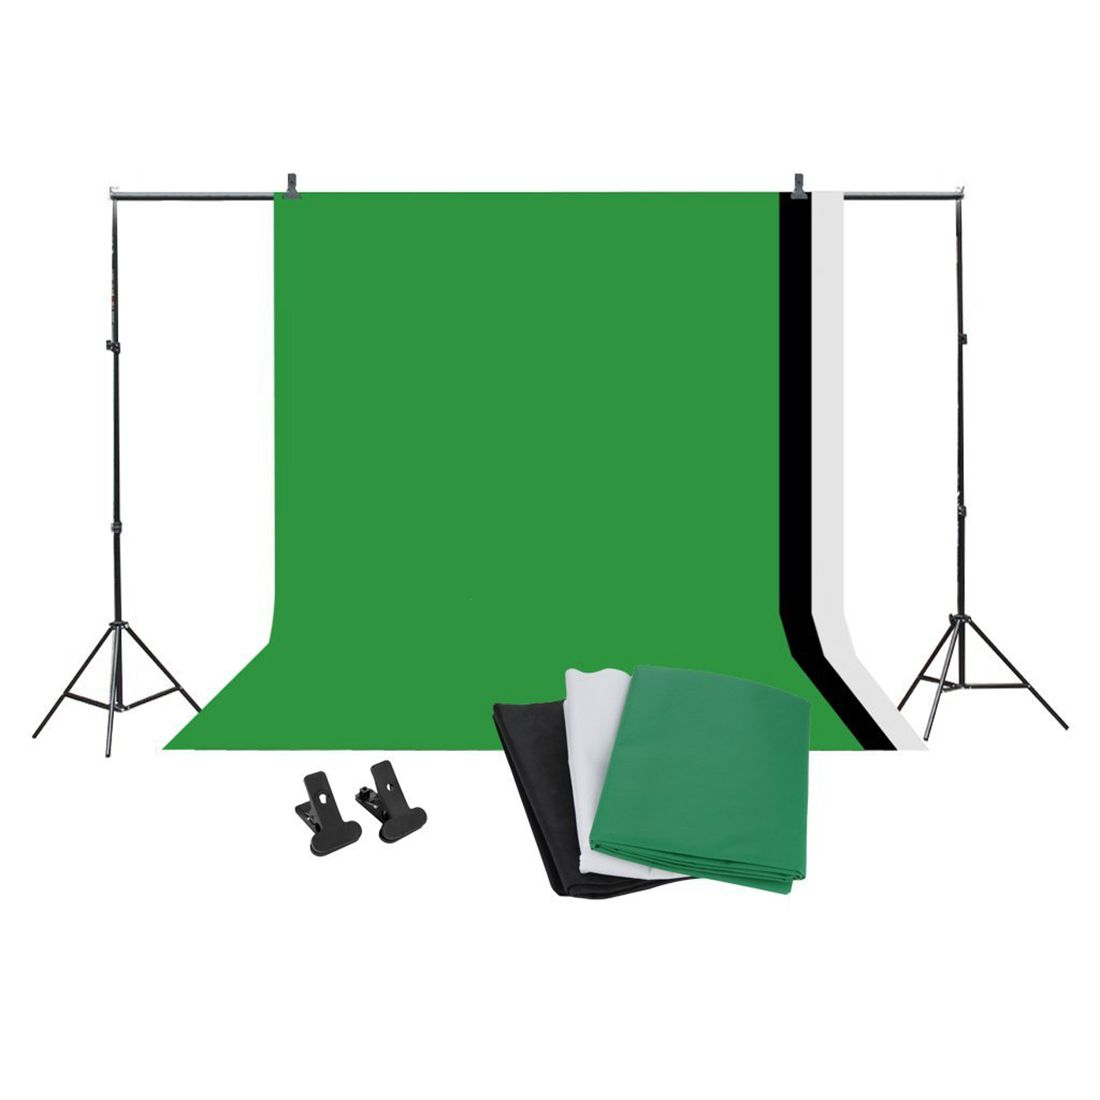 SCLS Professional Studio Background Stand Kit - 10x6.5ft Photo Backdrop Support Stand Kit + Backdrop Screen (Black,Green, harman kardon onyx studio 2 black